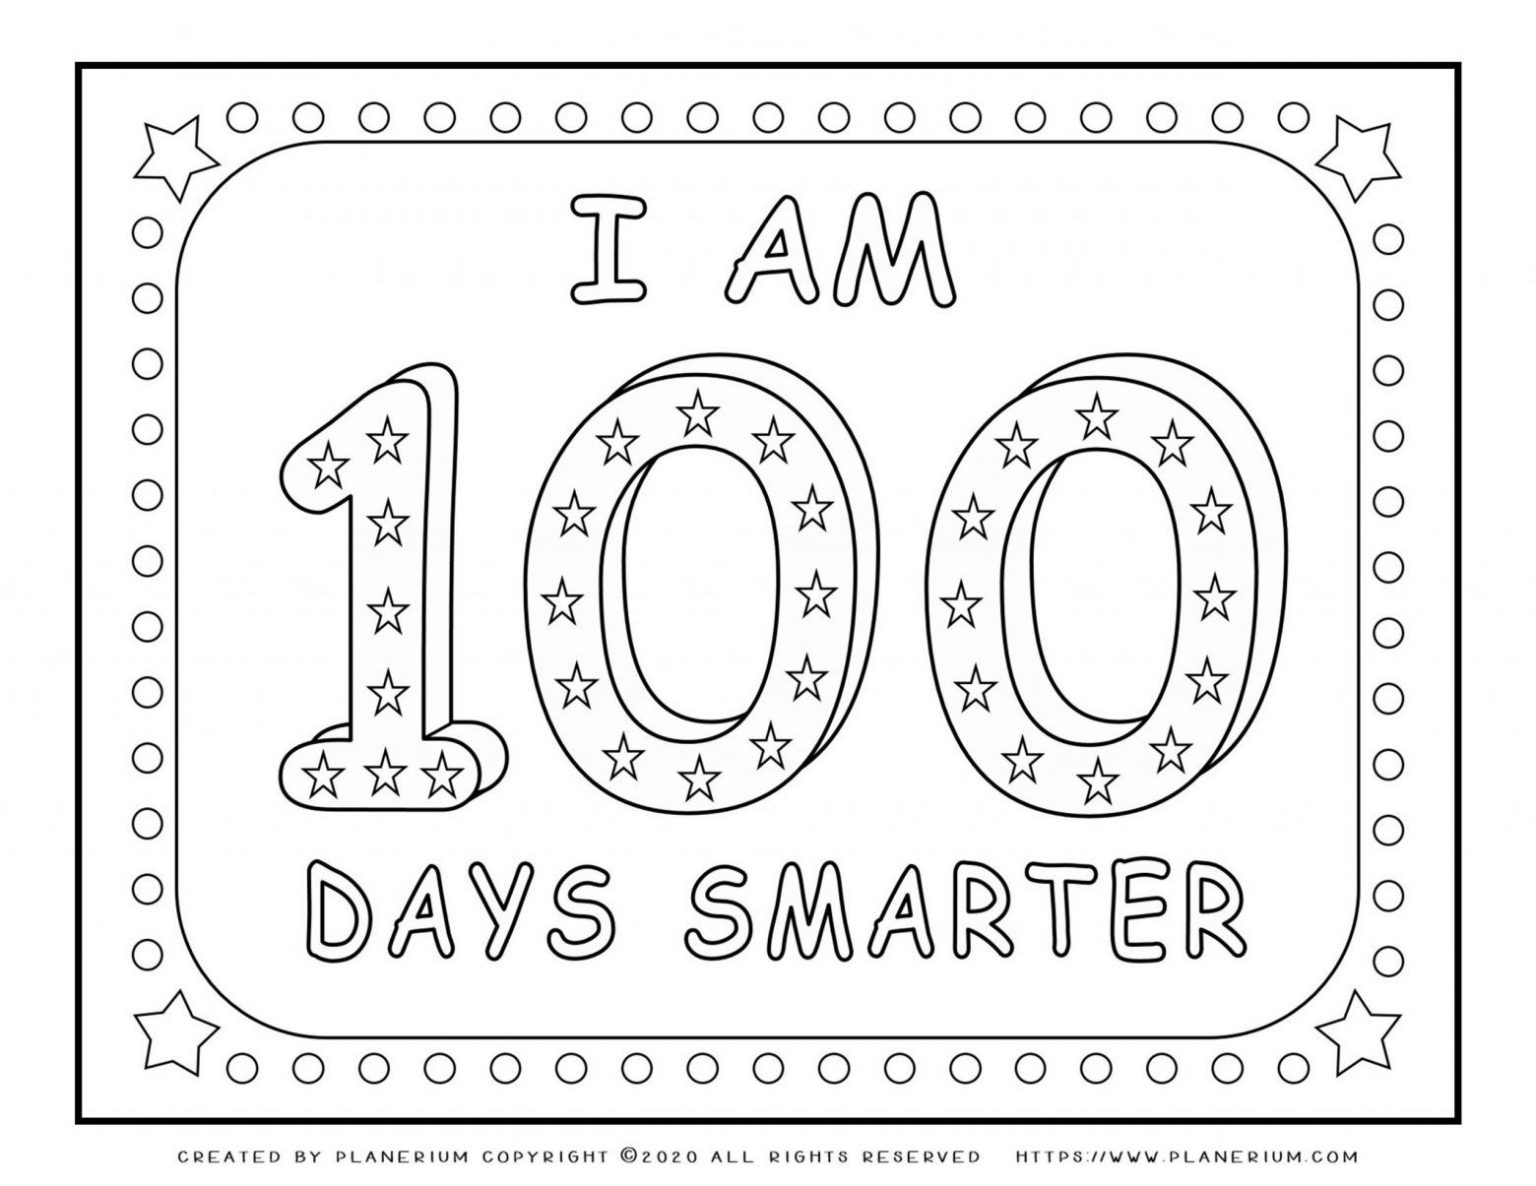 100 Days of School - Coloring Page - 100 Days Smarter | Planerium